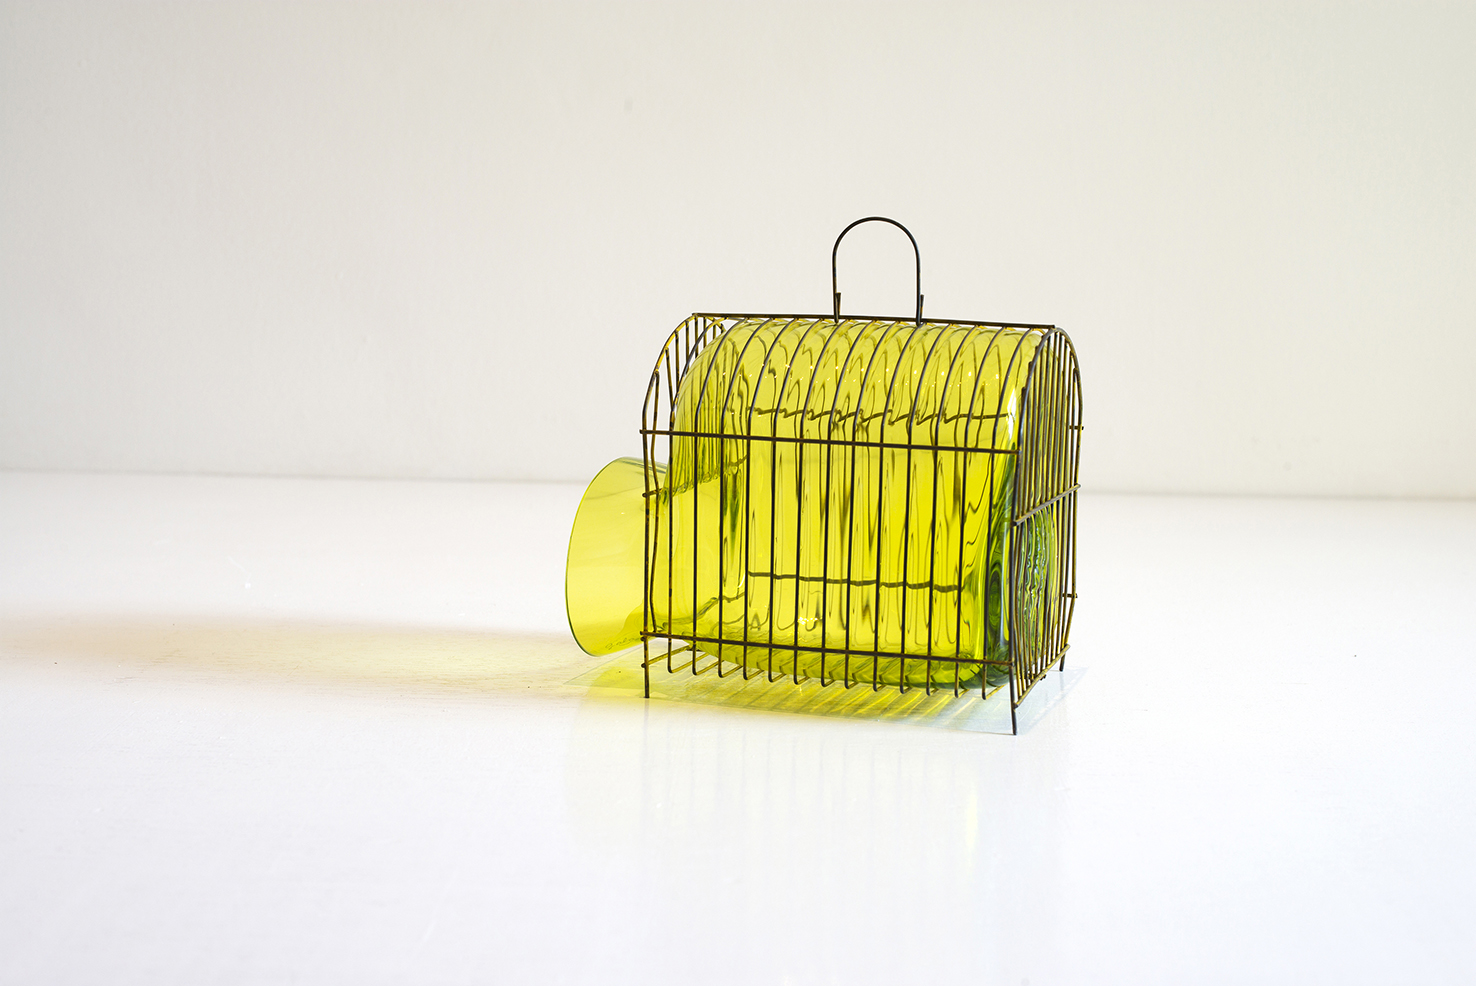 web22-Out_Cage_Yellow_Cage_small_photofelixfriedmann2-Gala-Fernandez-MarionFriedmannGallery.jpg